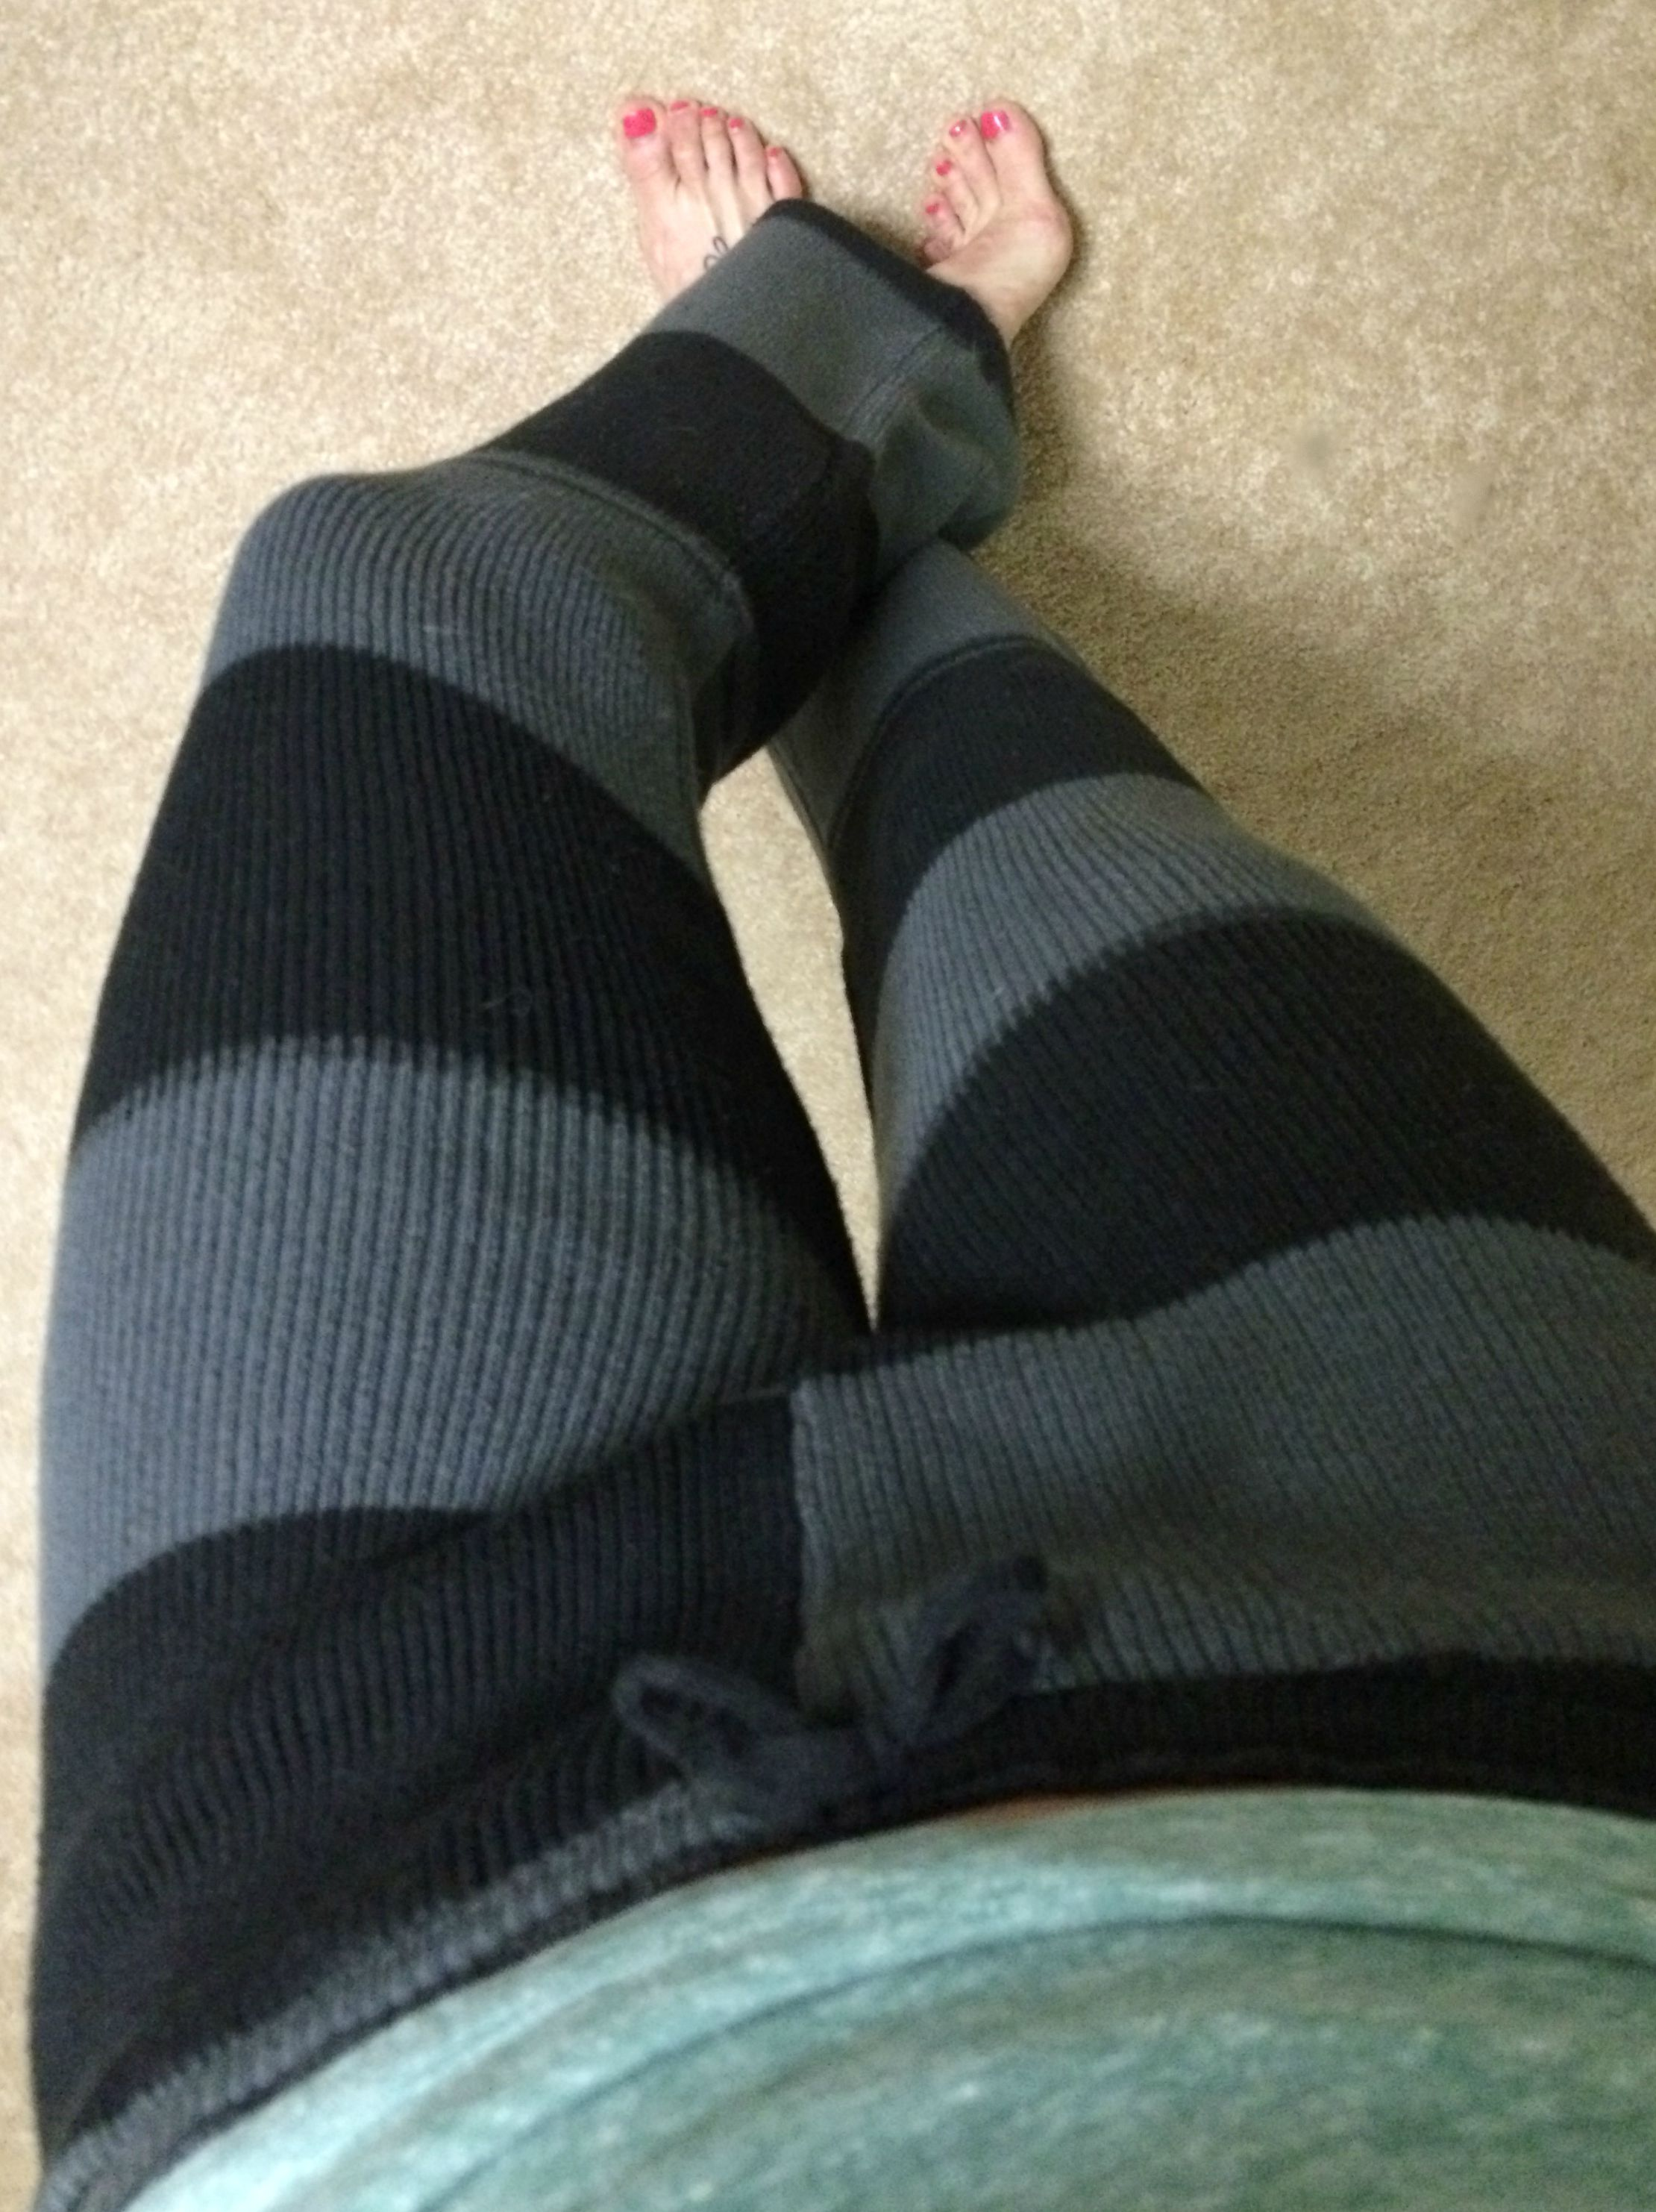 dance cover up pants